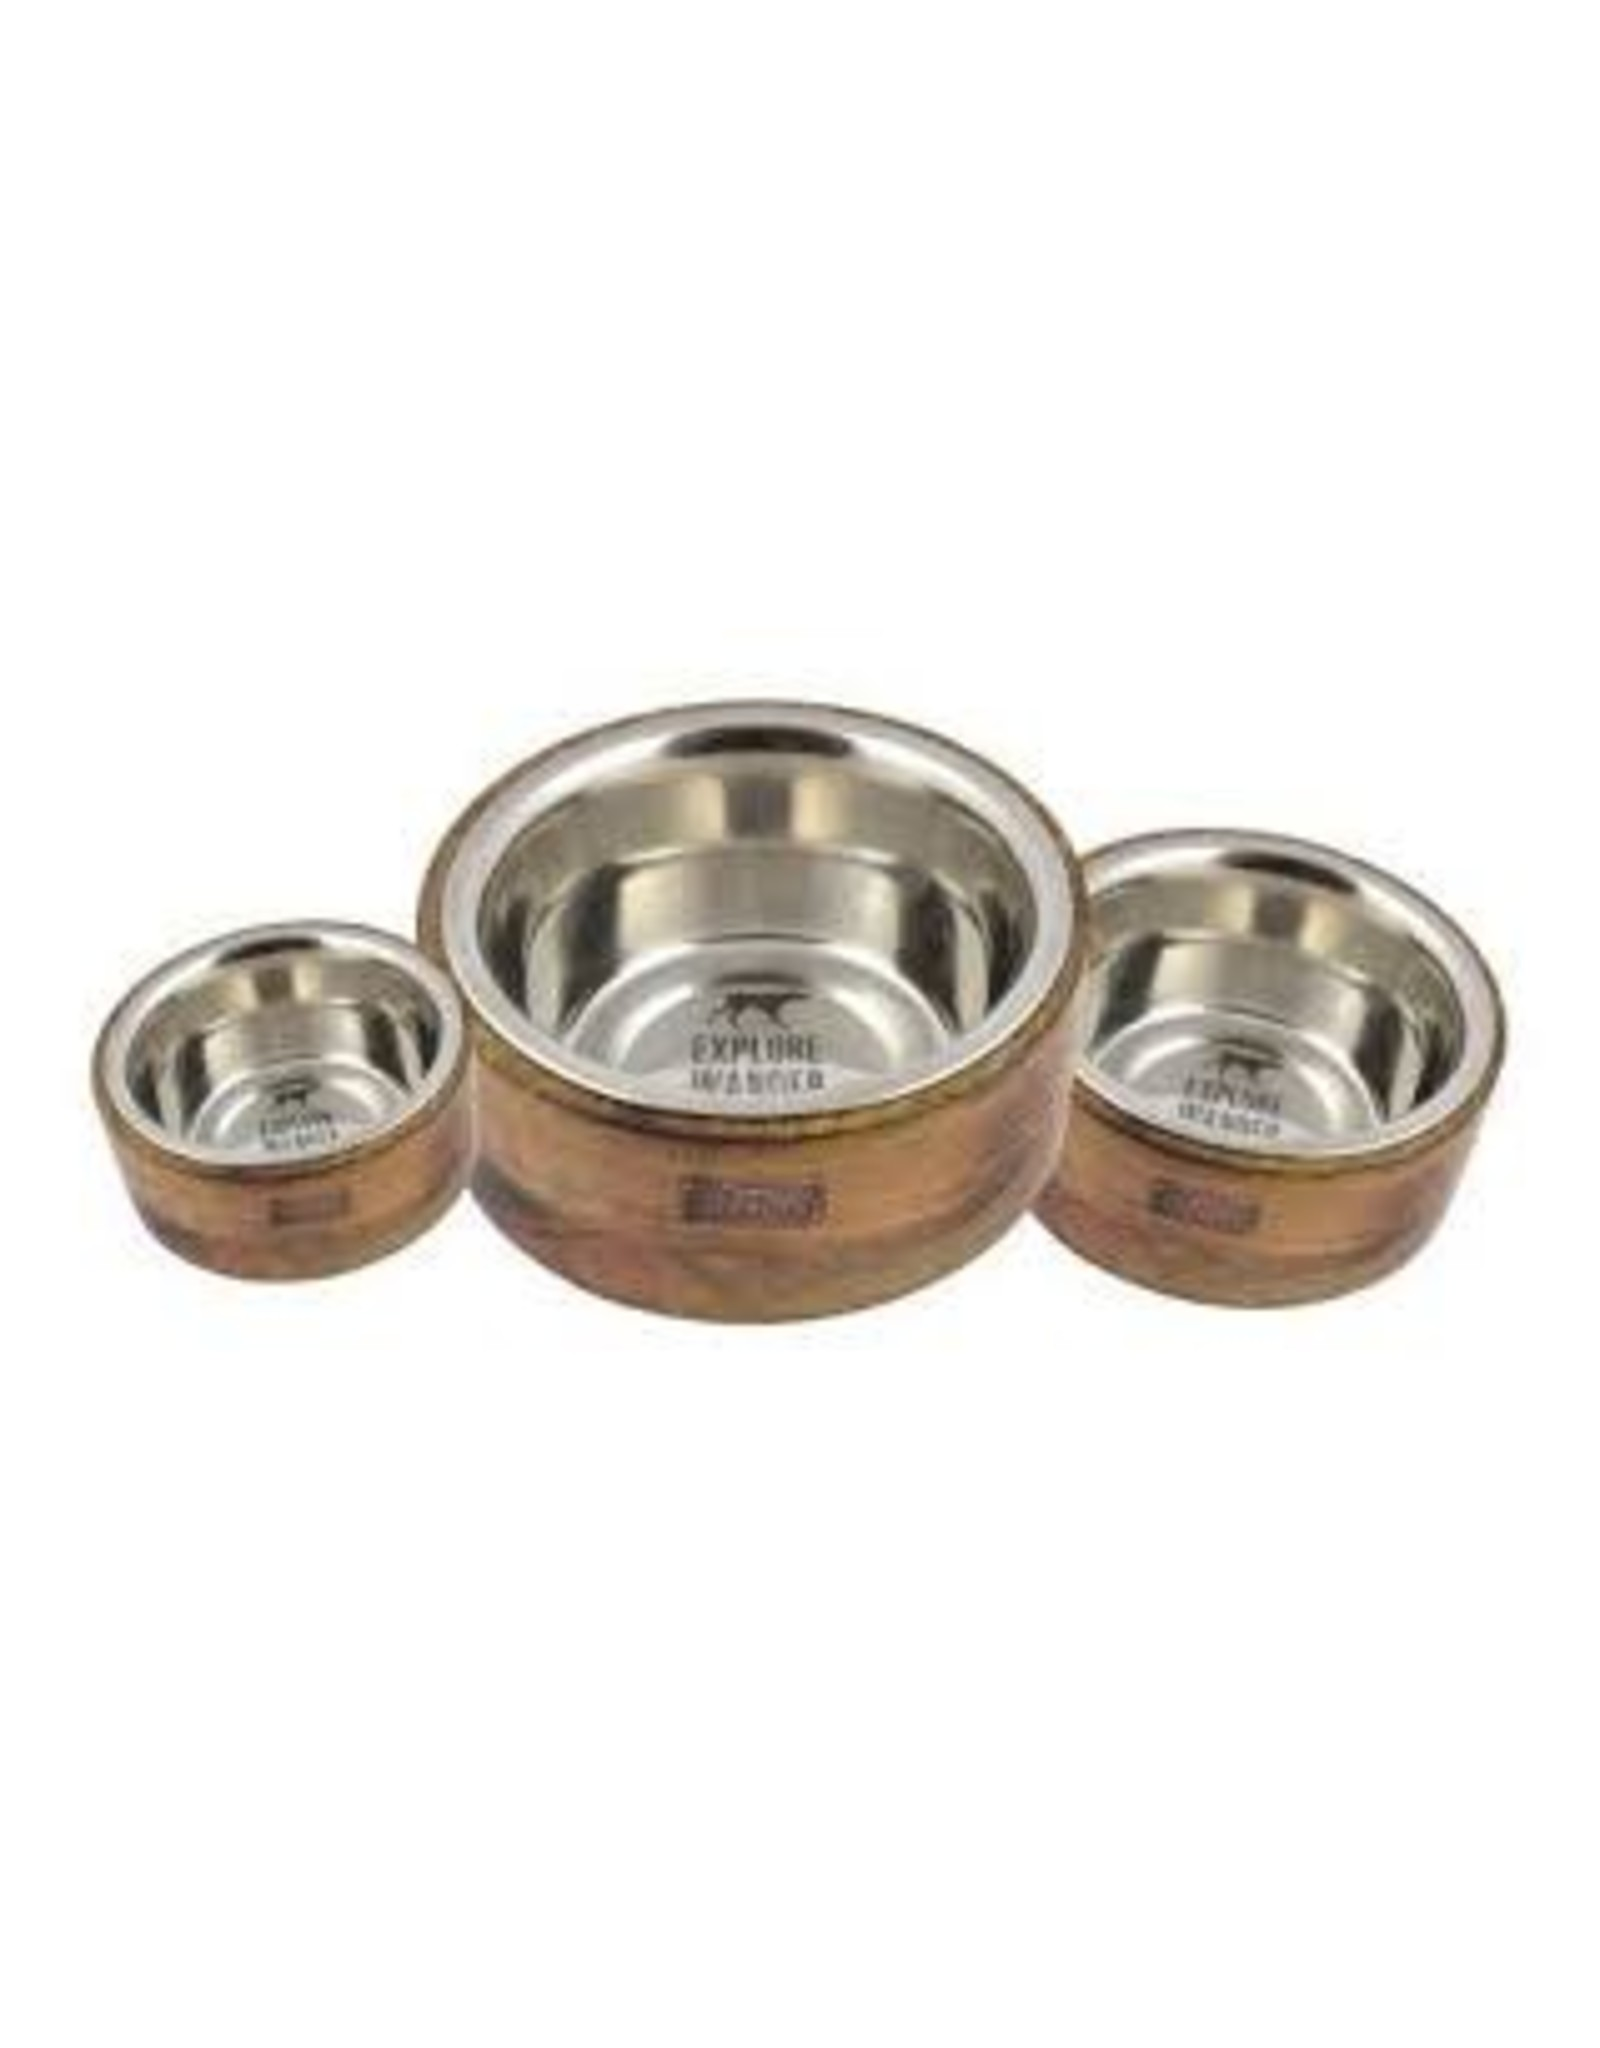 TALL TAILS TALLTAILS DOG BOWL STAINLESS WOOD 1 CUP